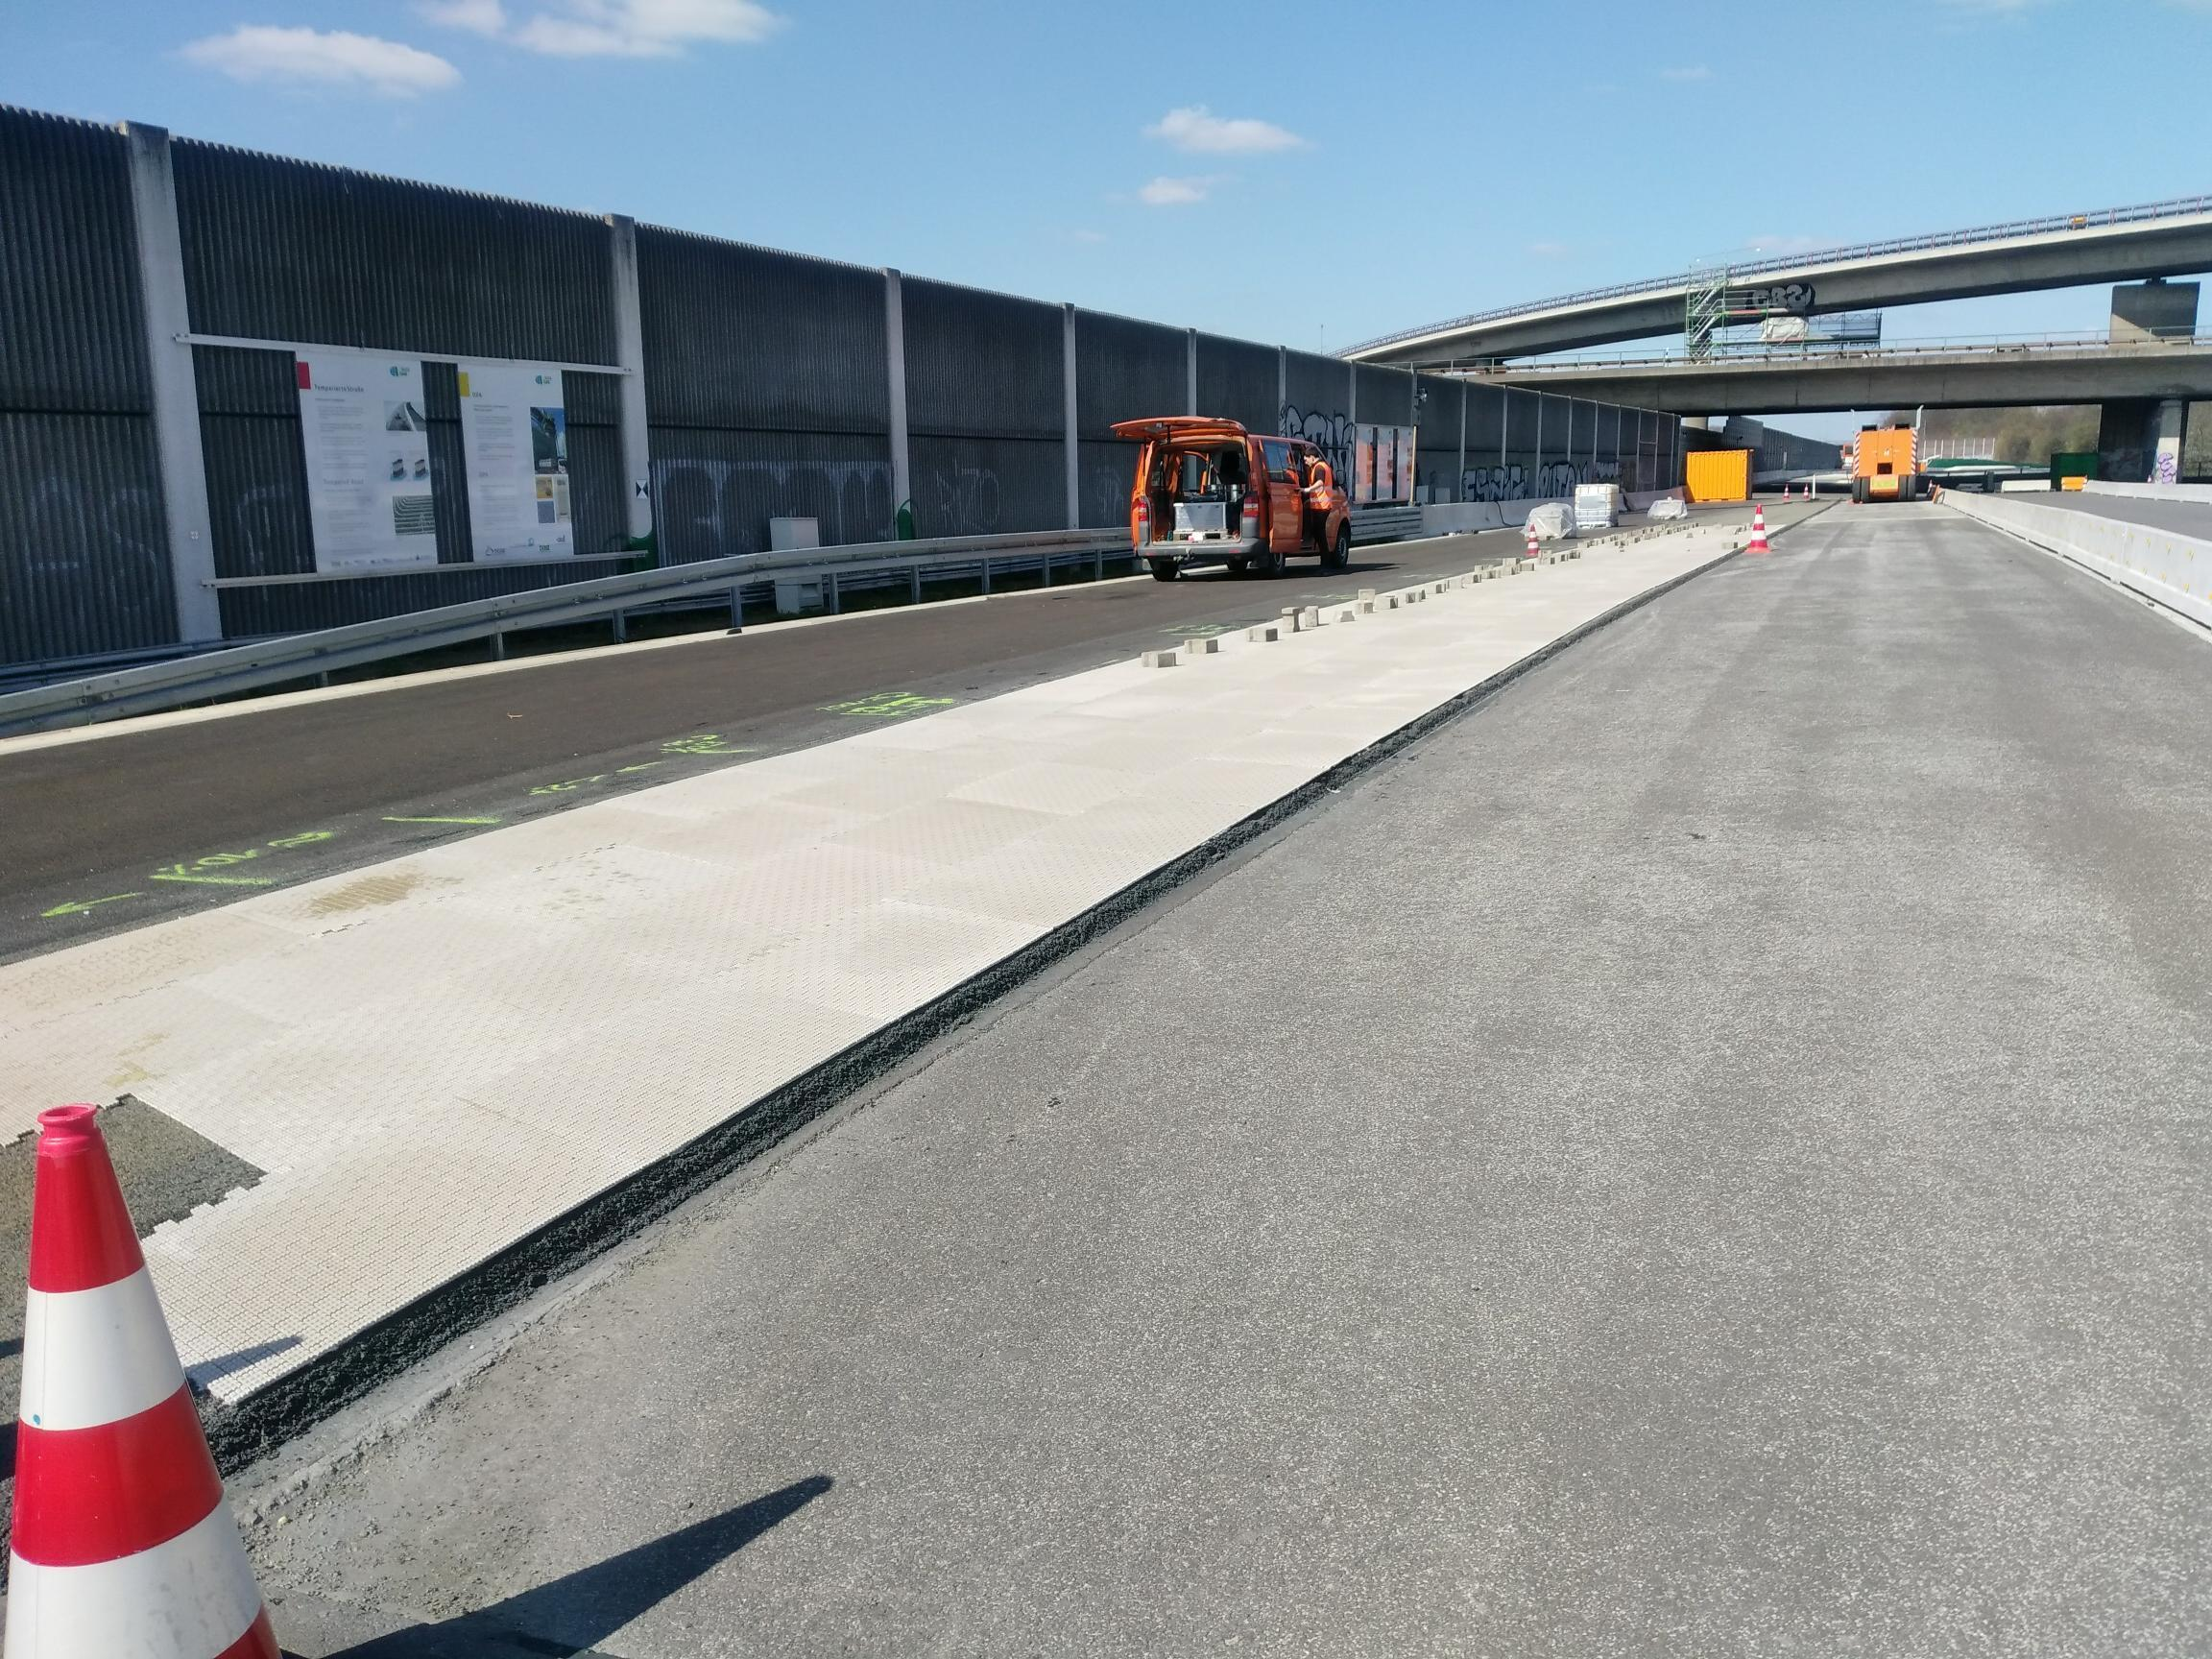 World premiere: Road surface of the future tested for the first time on the duraBASt site